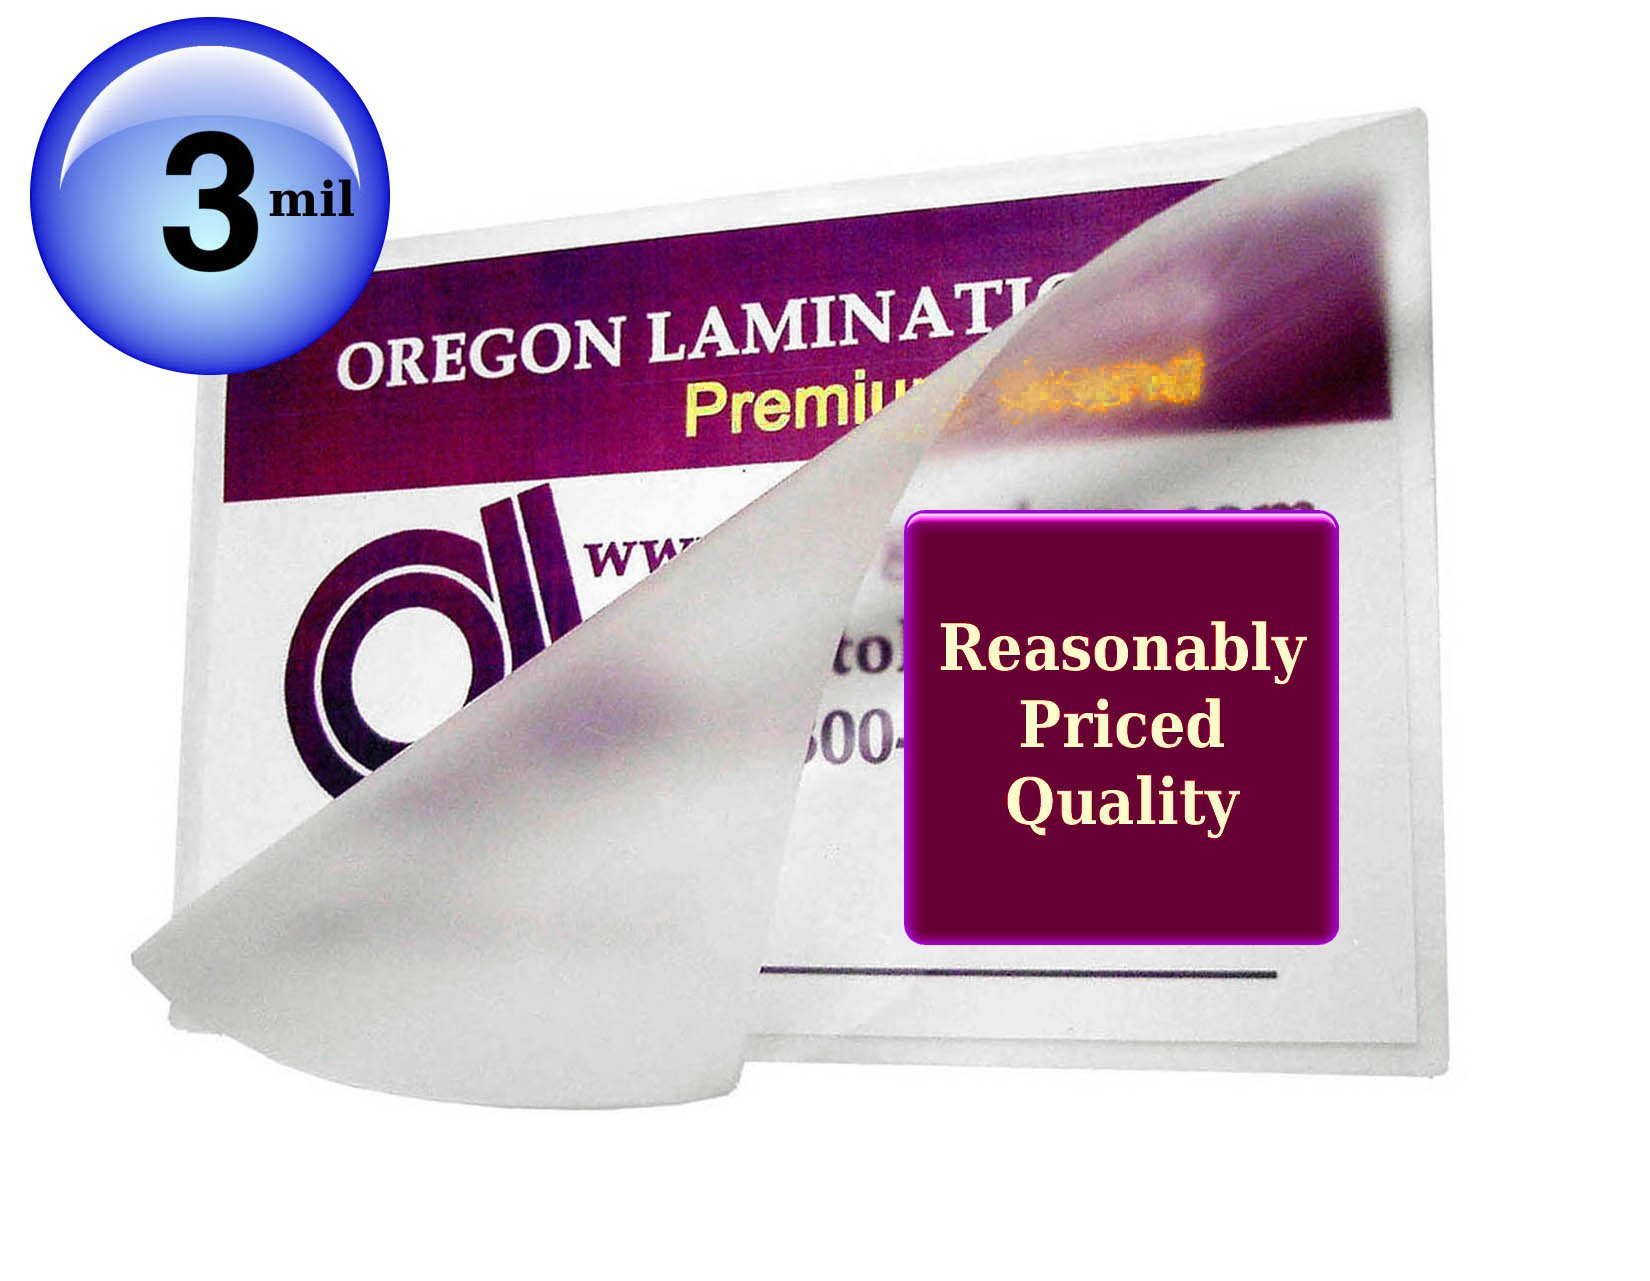 Double Letter Hot Laminating Pouches 3 Mil (Pk of 100) 11-1/2 x 17-1/2 Clear Glossy Small Menu Size Laminator Sleeves by Oregon Lamination Premium